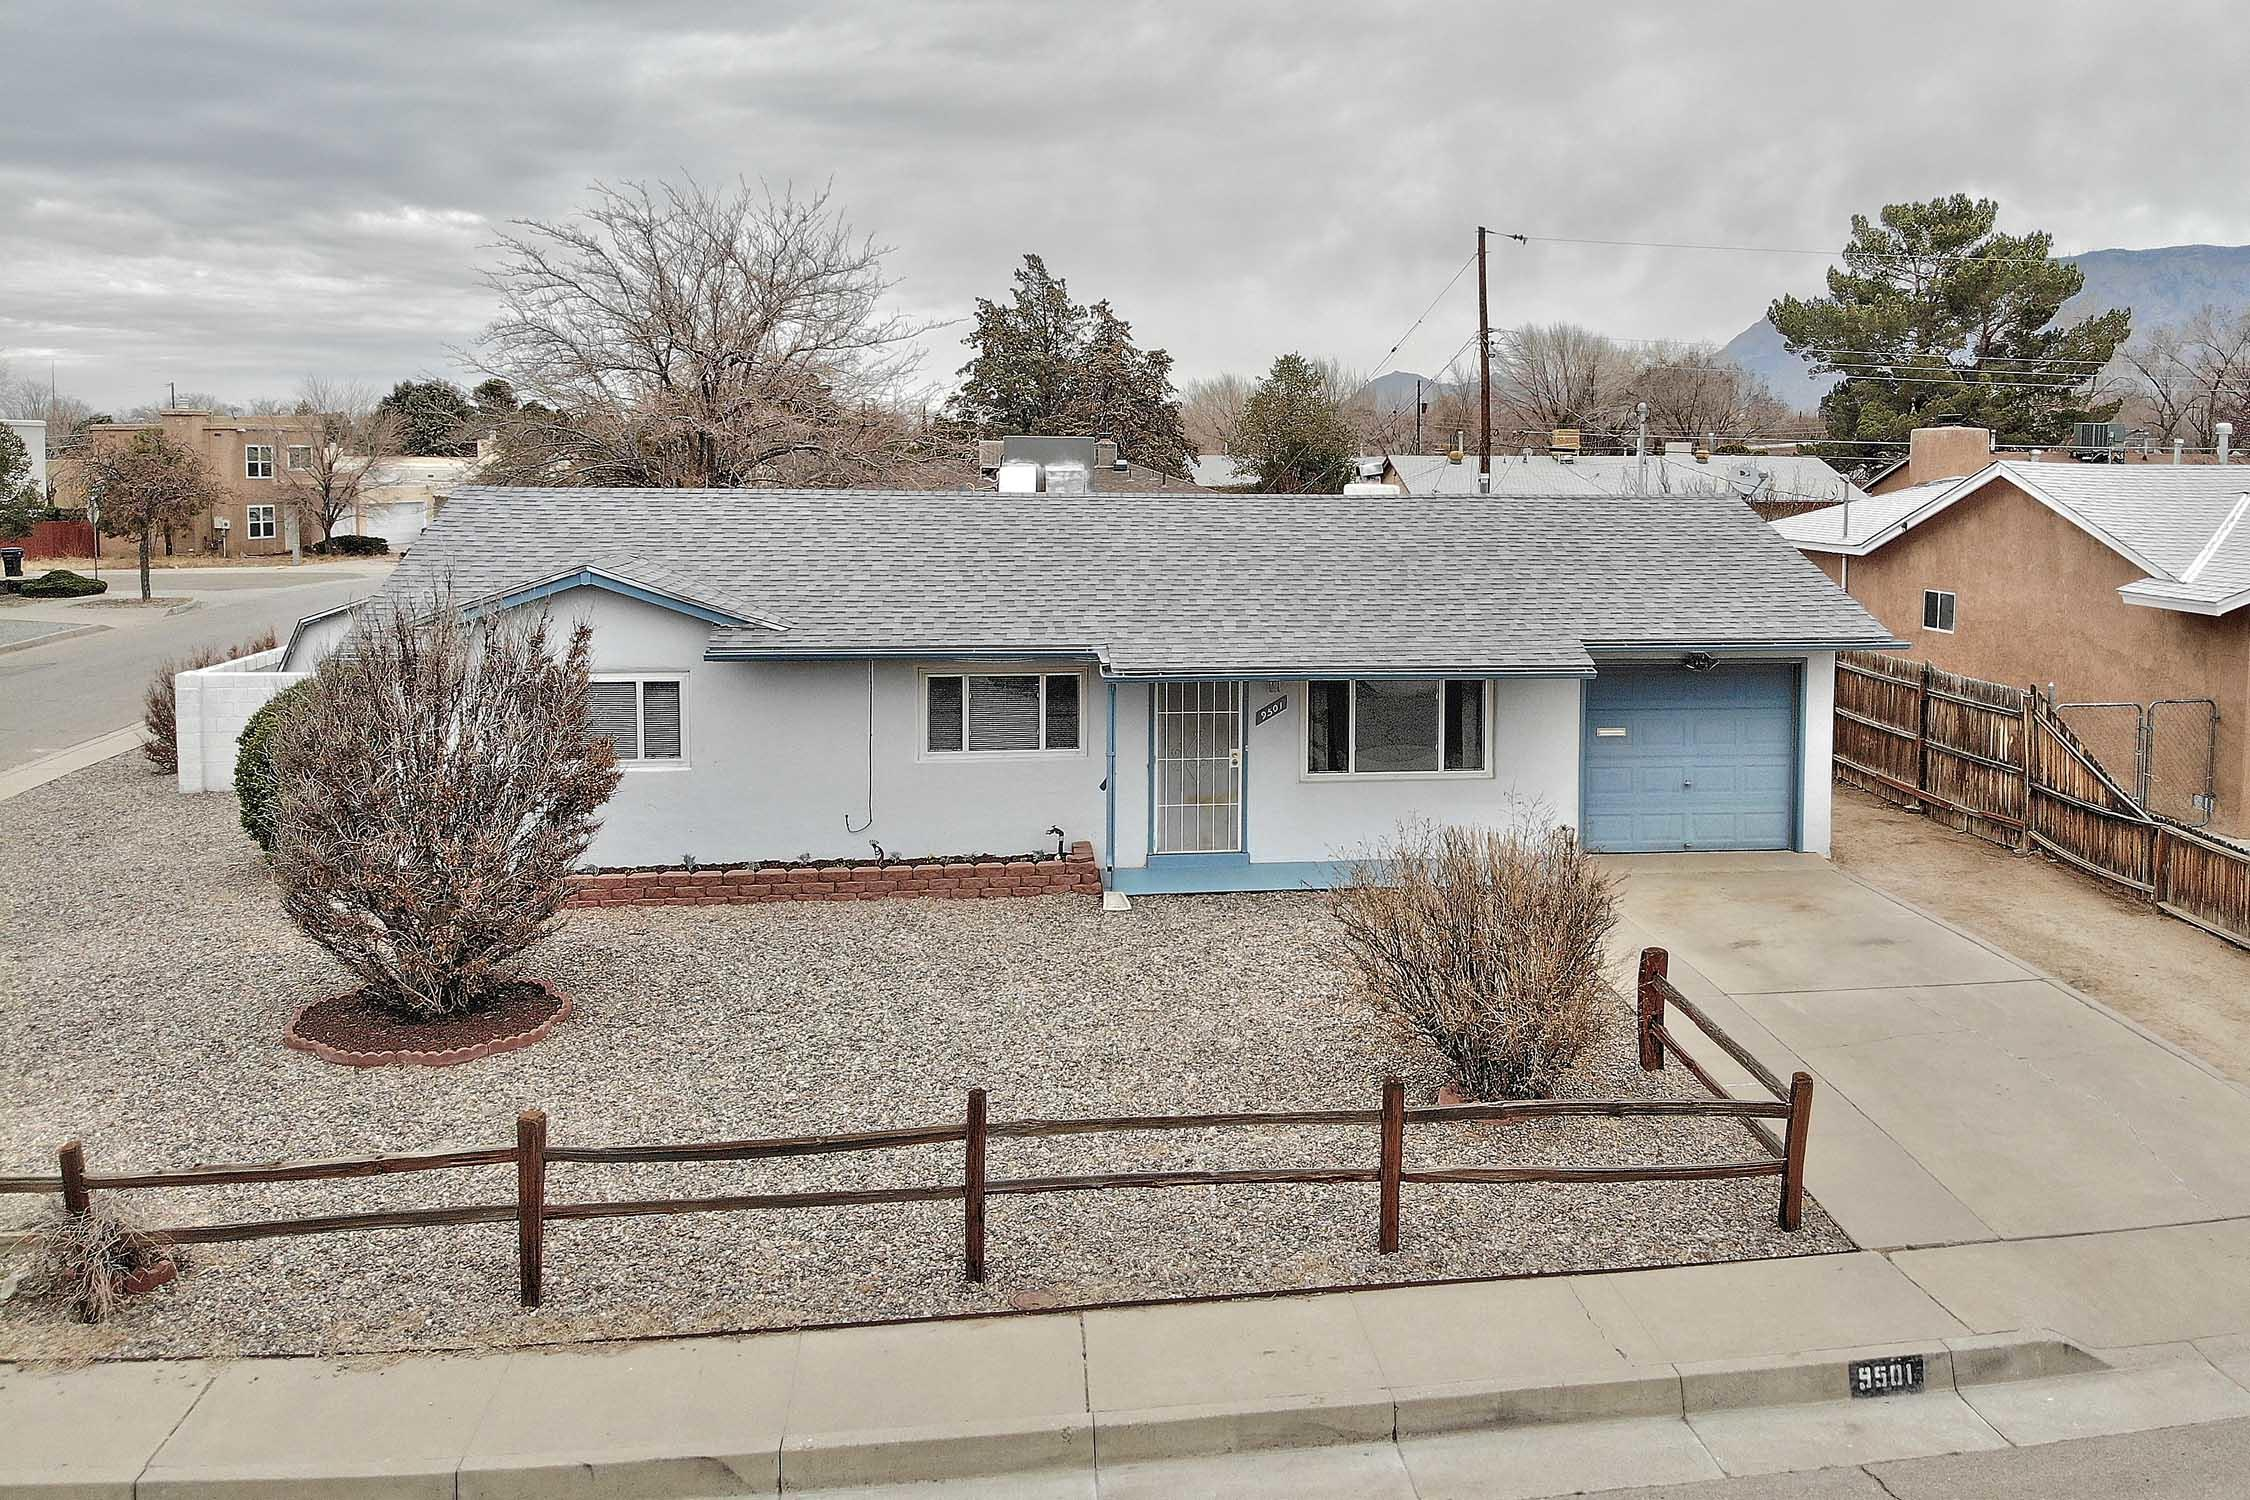 Charming NE Heights one story home, featuring 3 bedrooms, updated full bath plus 2 living areas. Freshly painted inside and out. Vinyl windows and slider by Accent windows. New carpet in the bedrooms. Cute open kitchen with breakfast bar. Enjoy a large corner lot with gated backyard access, two sheds plus a covered patio. Plenty of room to store your RV.  Main living area featuring a wood burning fireplace surrounded by bookcases, opens to the backyard through a sliding glass door. Roof replaced 2017 on the main house, covered patio, and large shed. Installed refrigerated air and heat combo 2016. Lots of beautiful flowering bushes and shrubs. Nice wide streets perfect for walking, with two parks within walking distance! Quick access to freeways, KAFB/Sandia Labs,